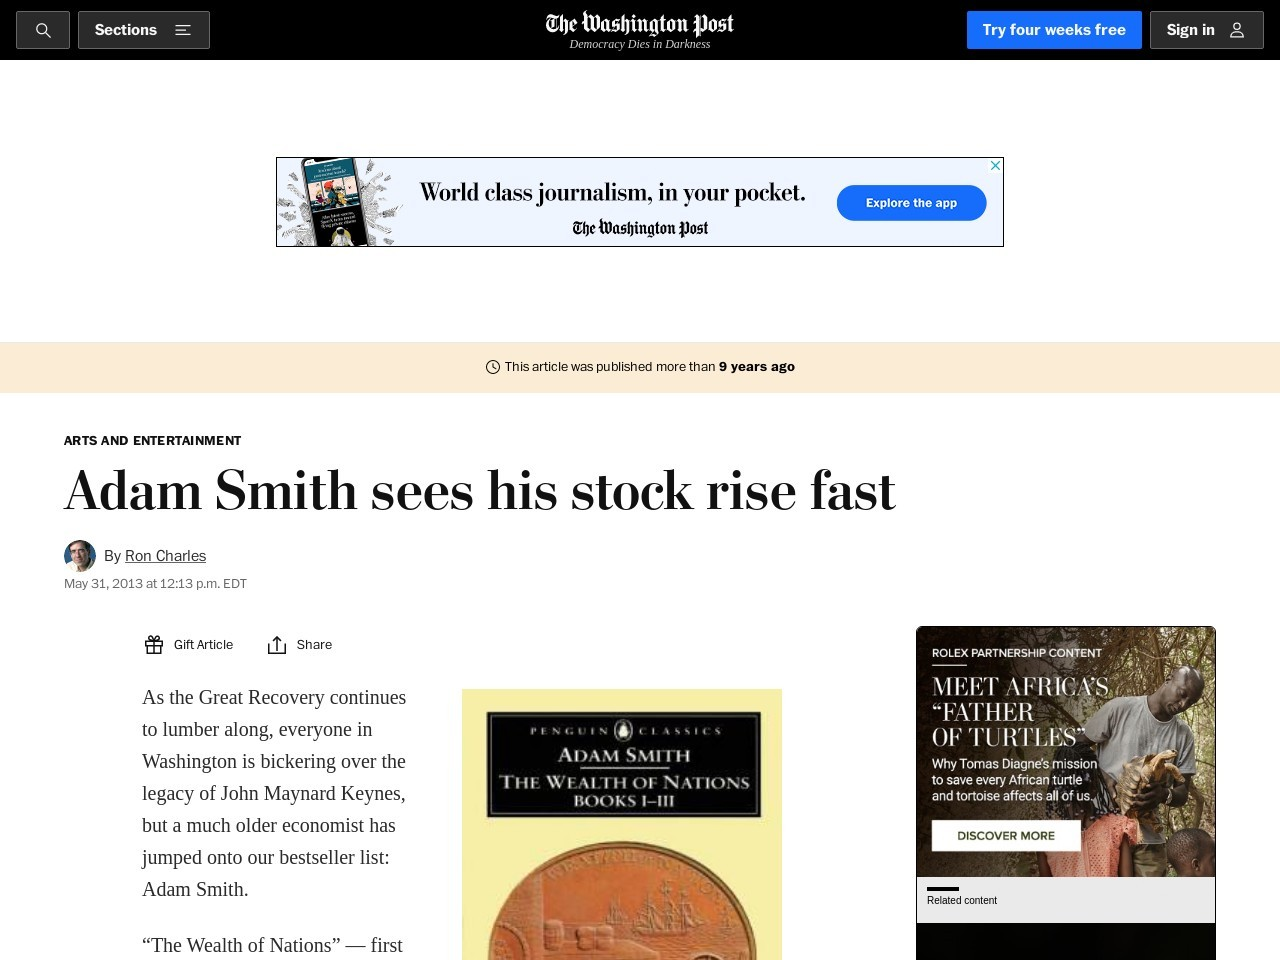 Adam Smith sees his stock rise fast